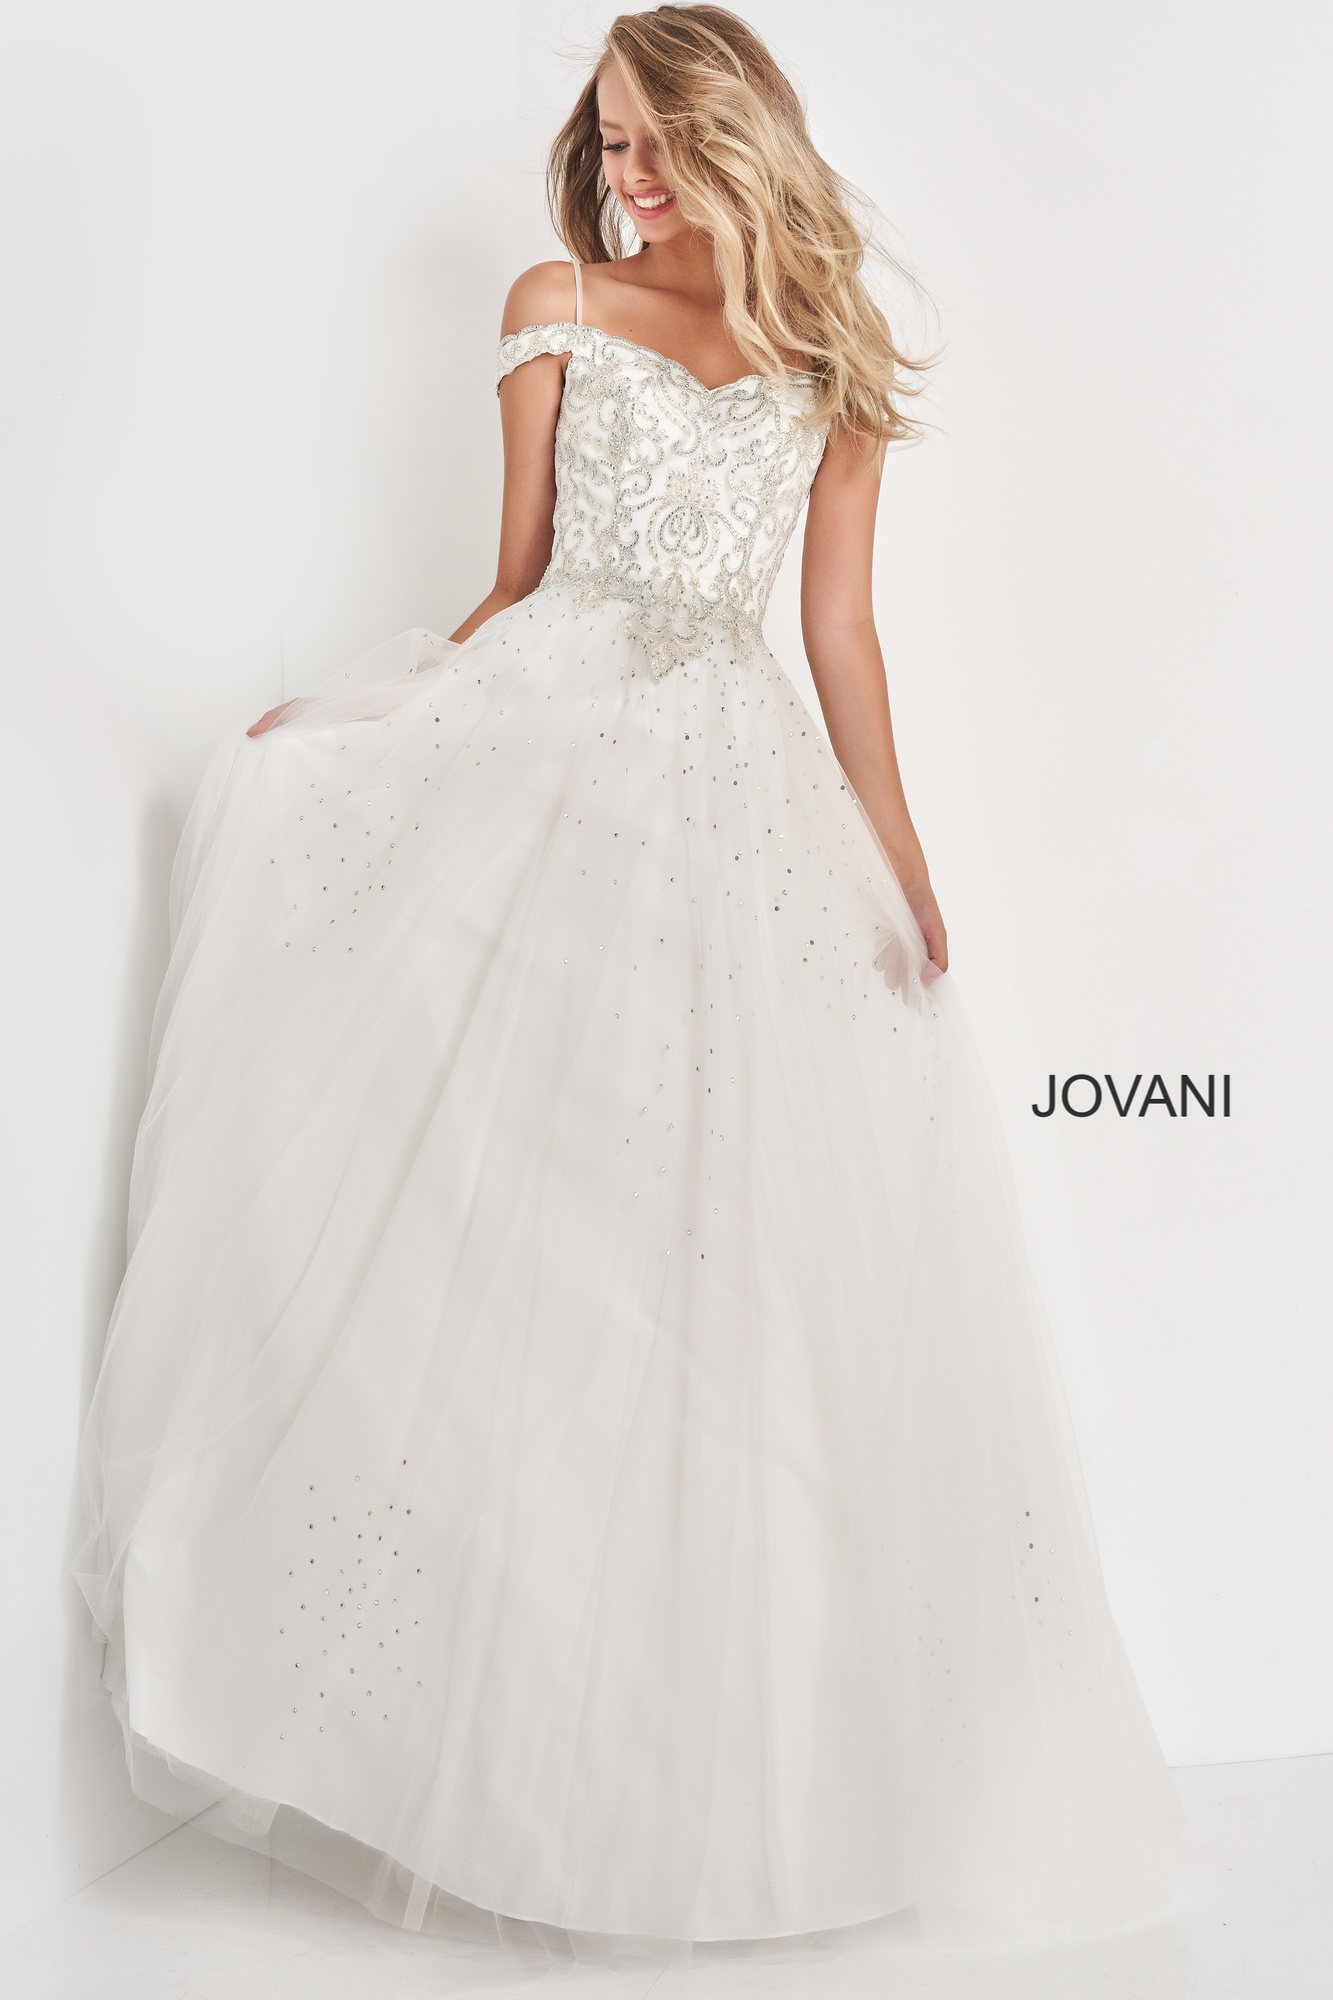 jovani White Off the Shoulder Long Jovani Girls Dress K66721